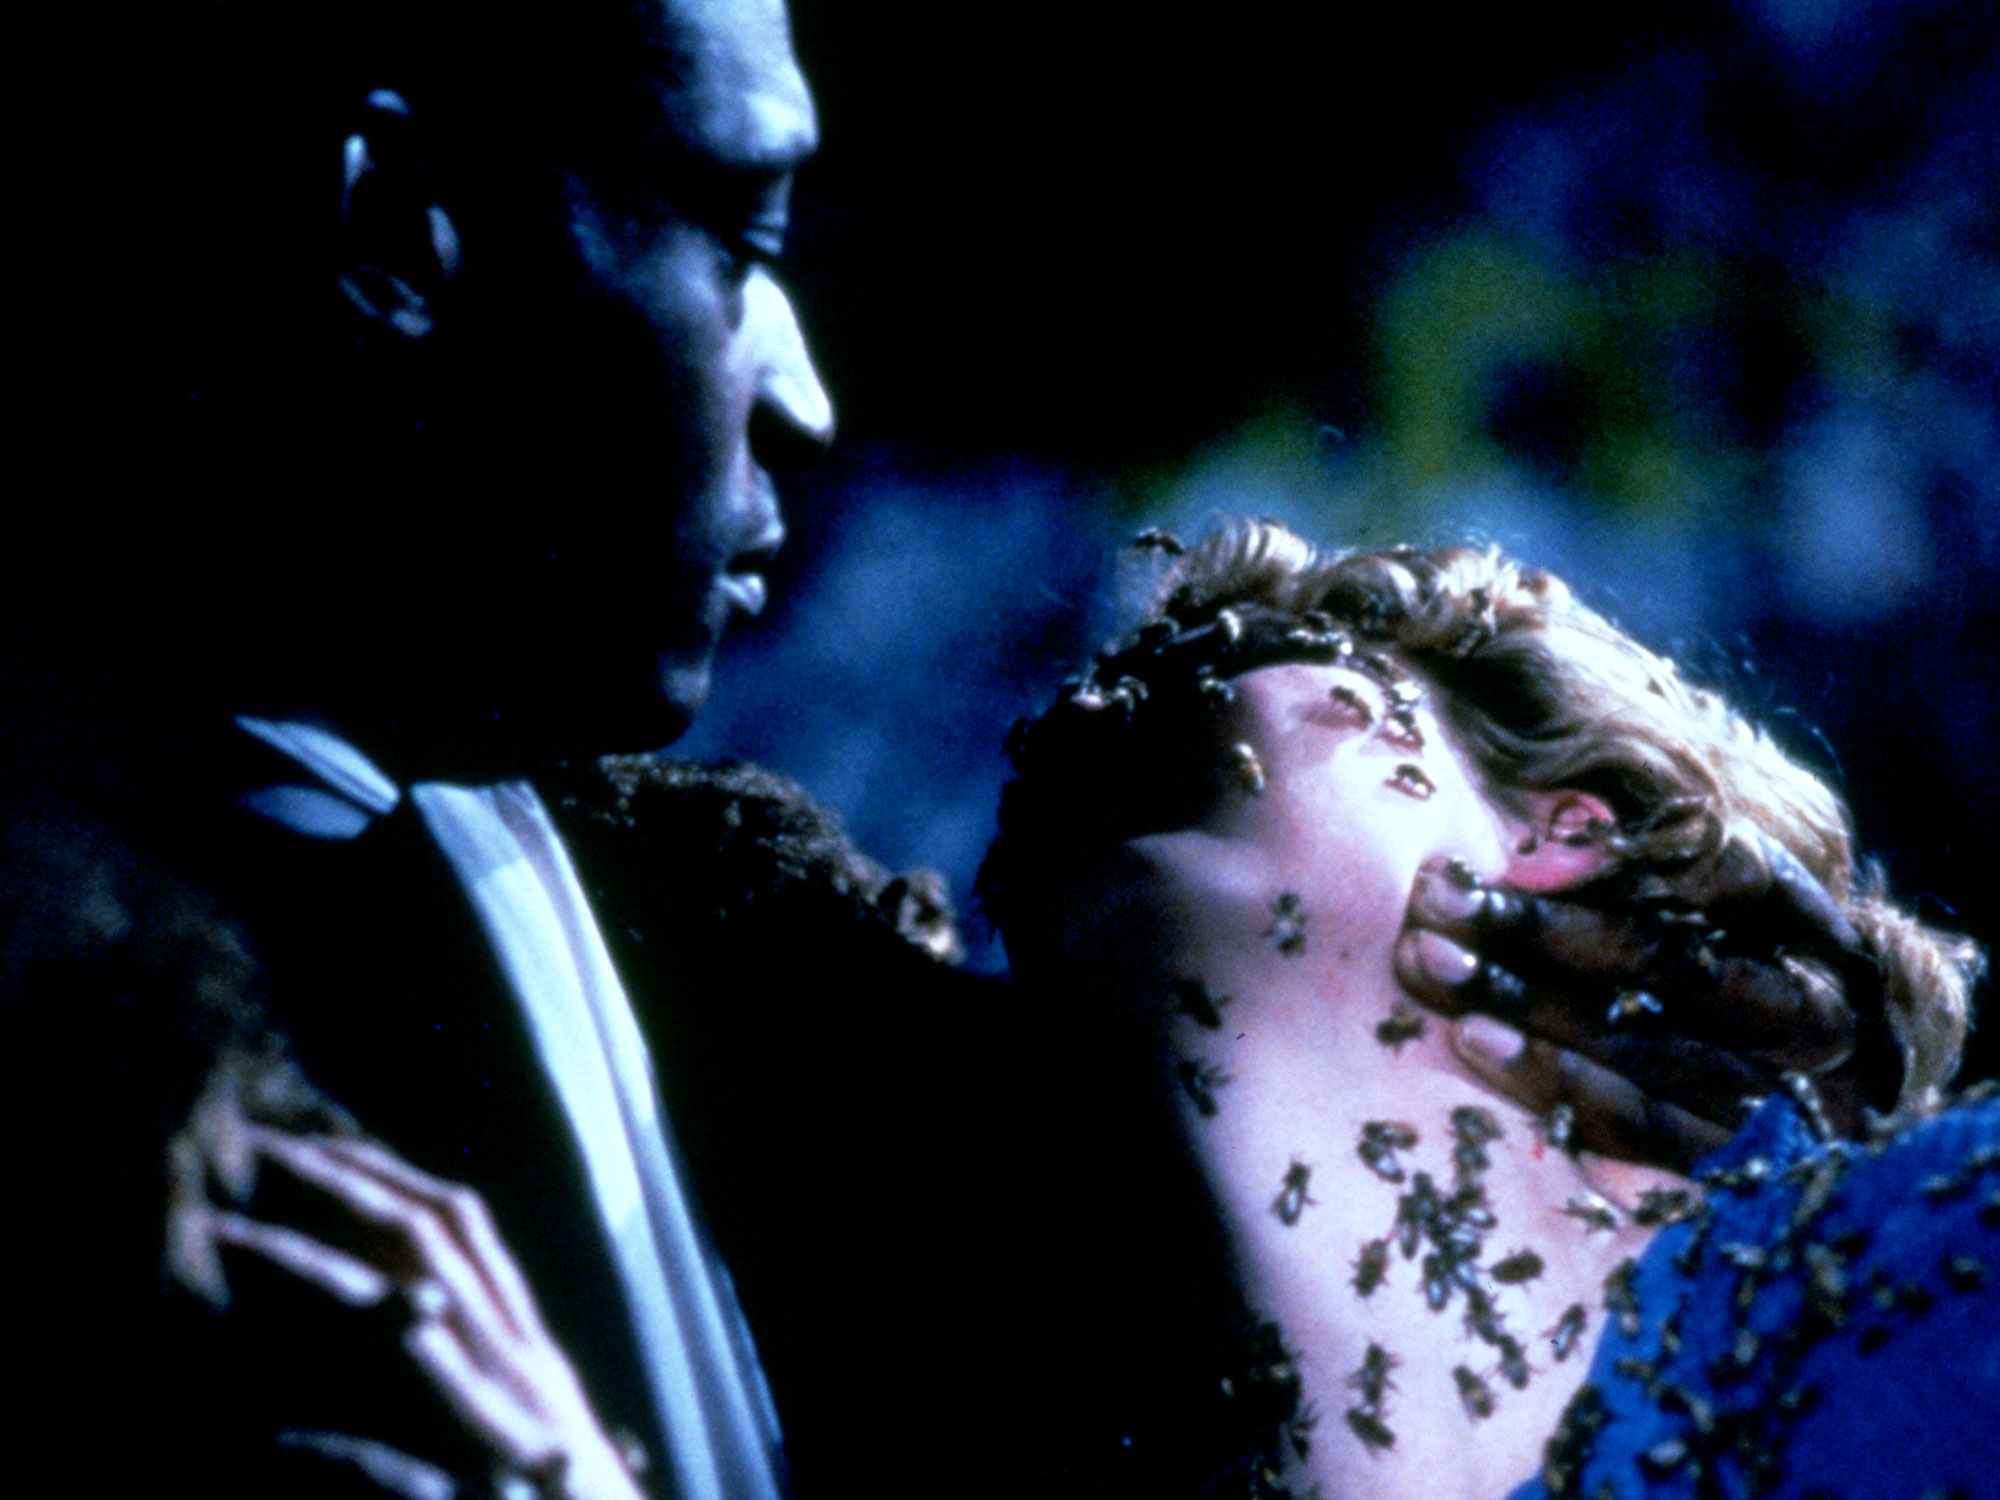 How Candyman Reflected The Fears Of Urban Society